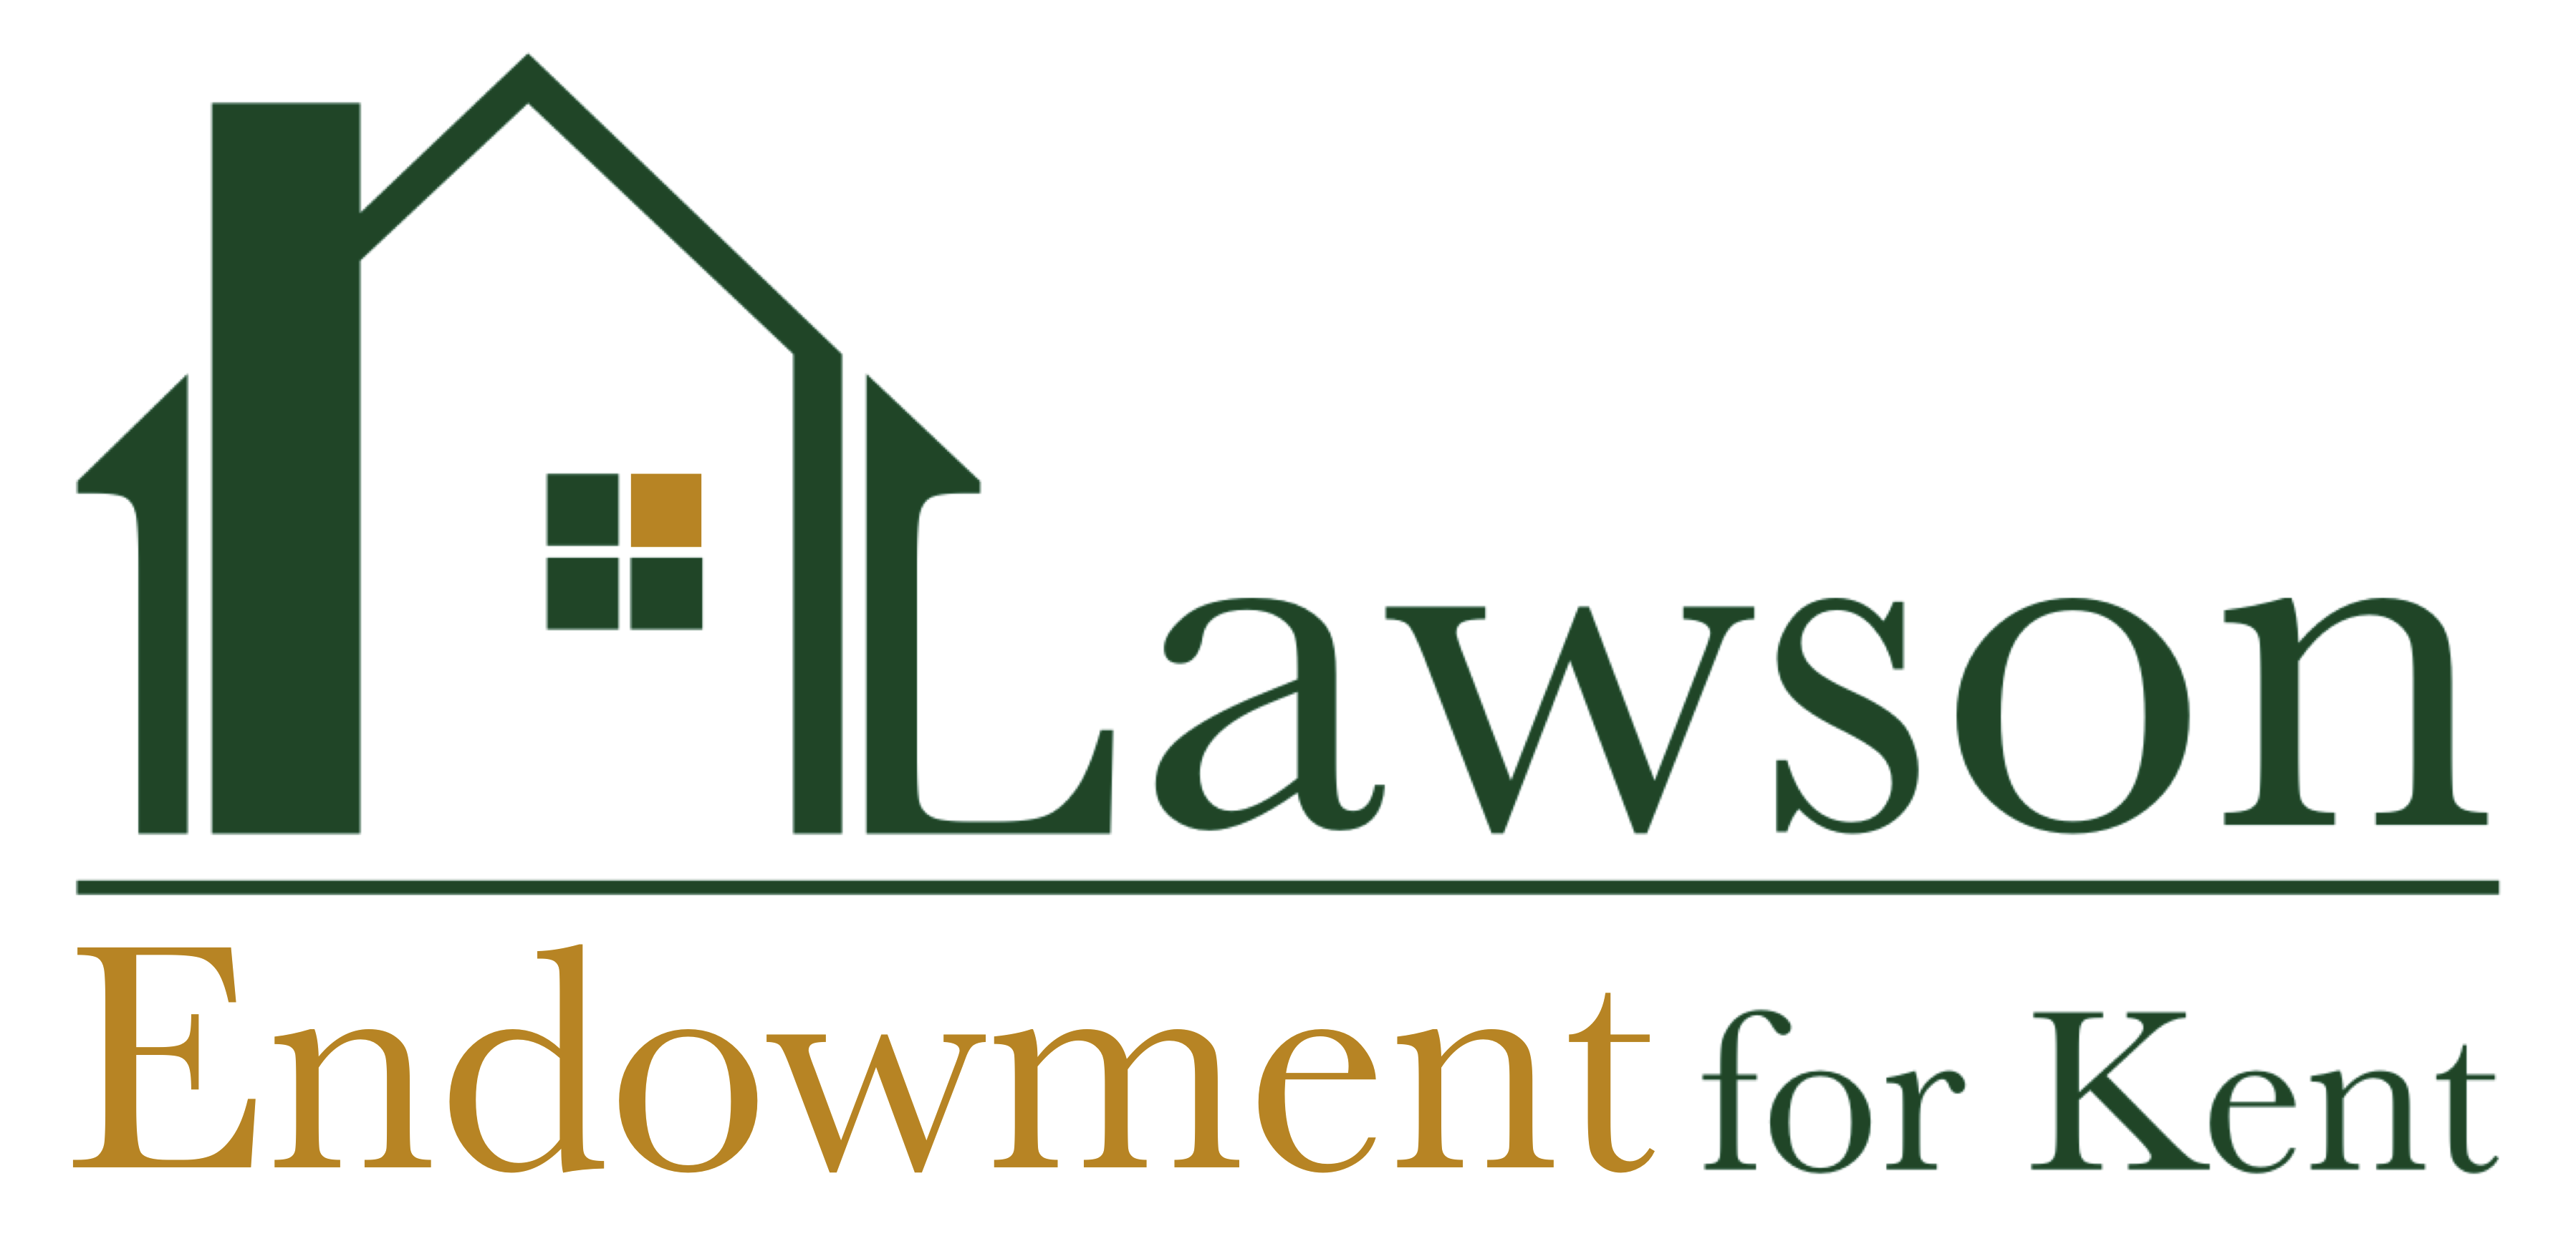 The Lawson Endowment for Kent